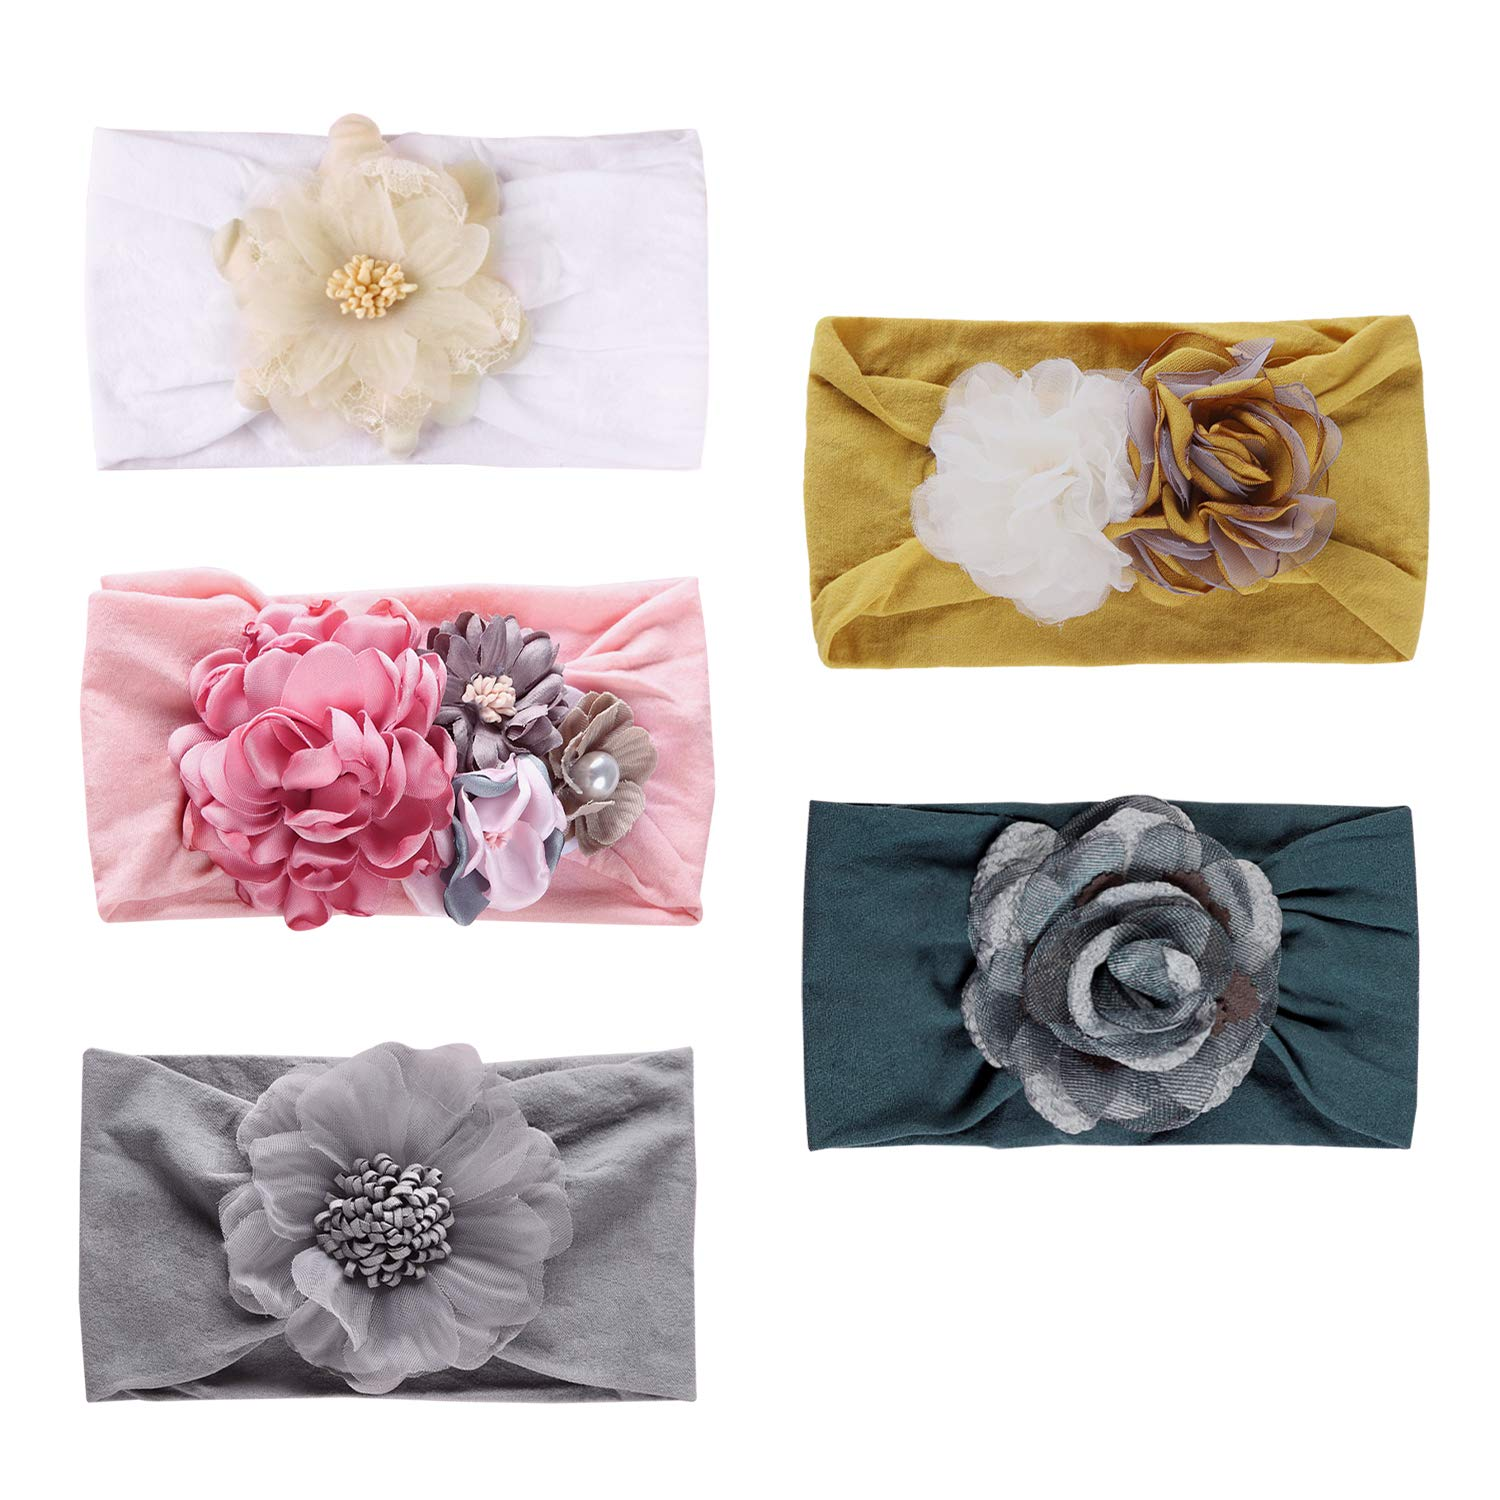 Funtopia 5Pcs gift Super Stretchy Nylon Ba Flowers Headbands Be super welcome for with